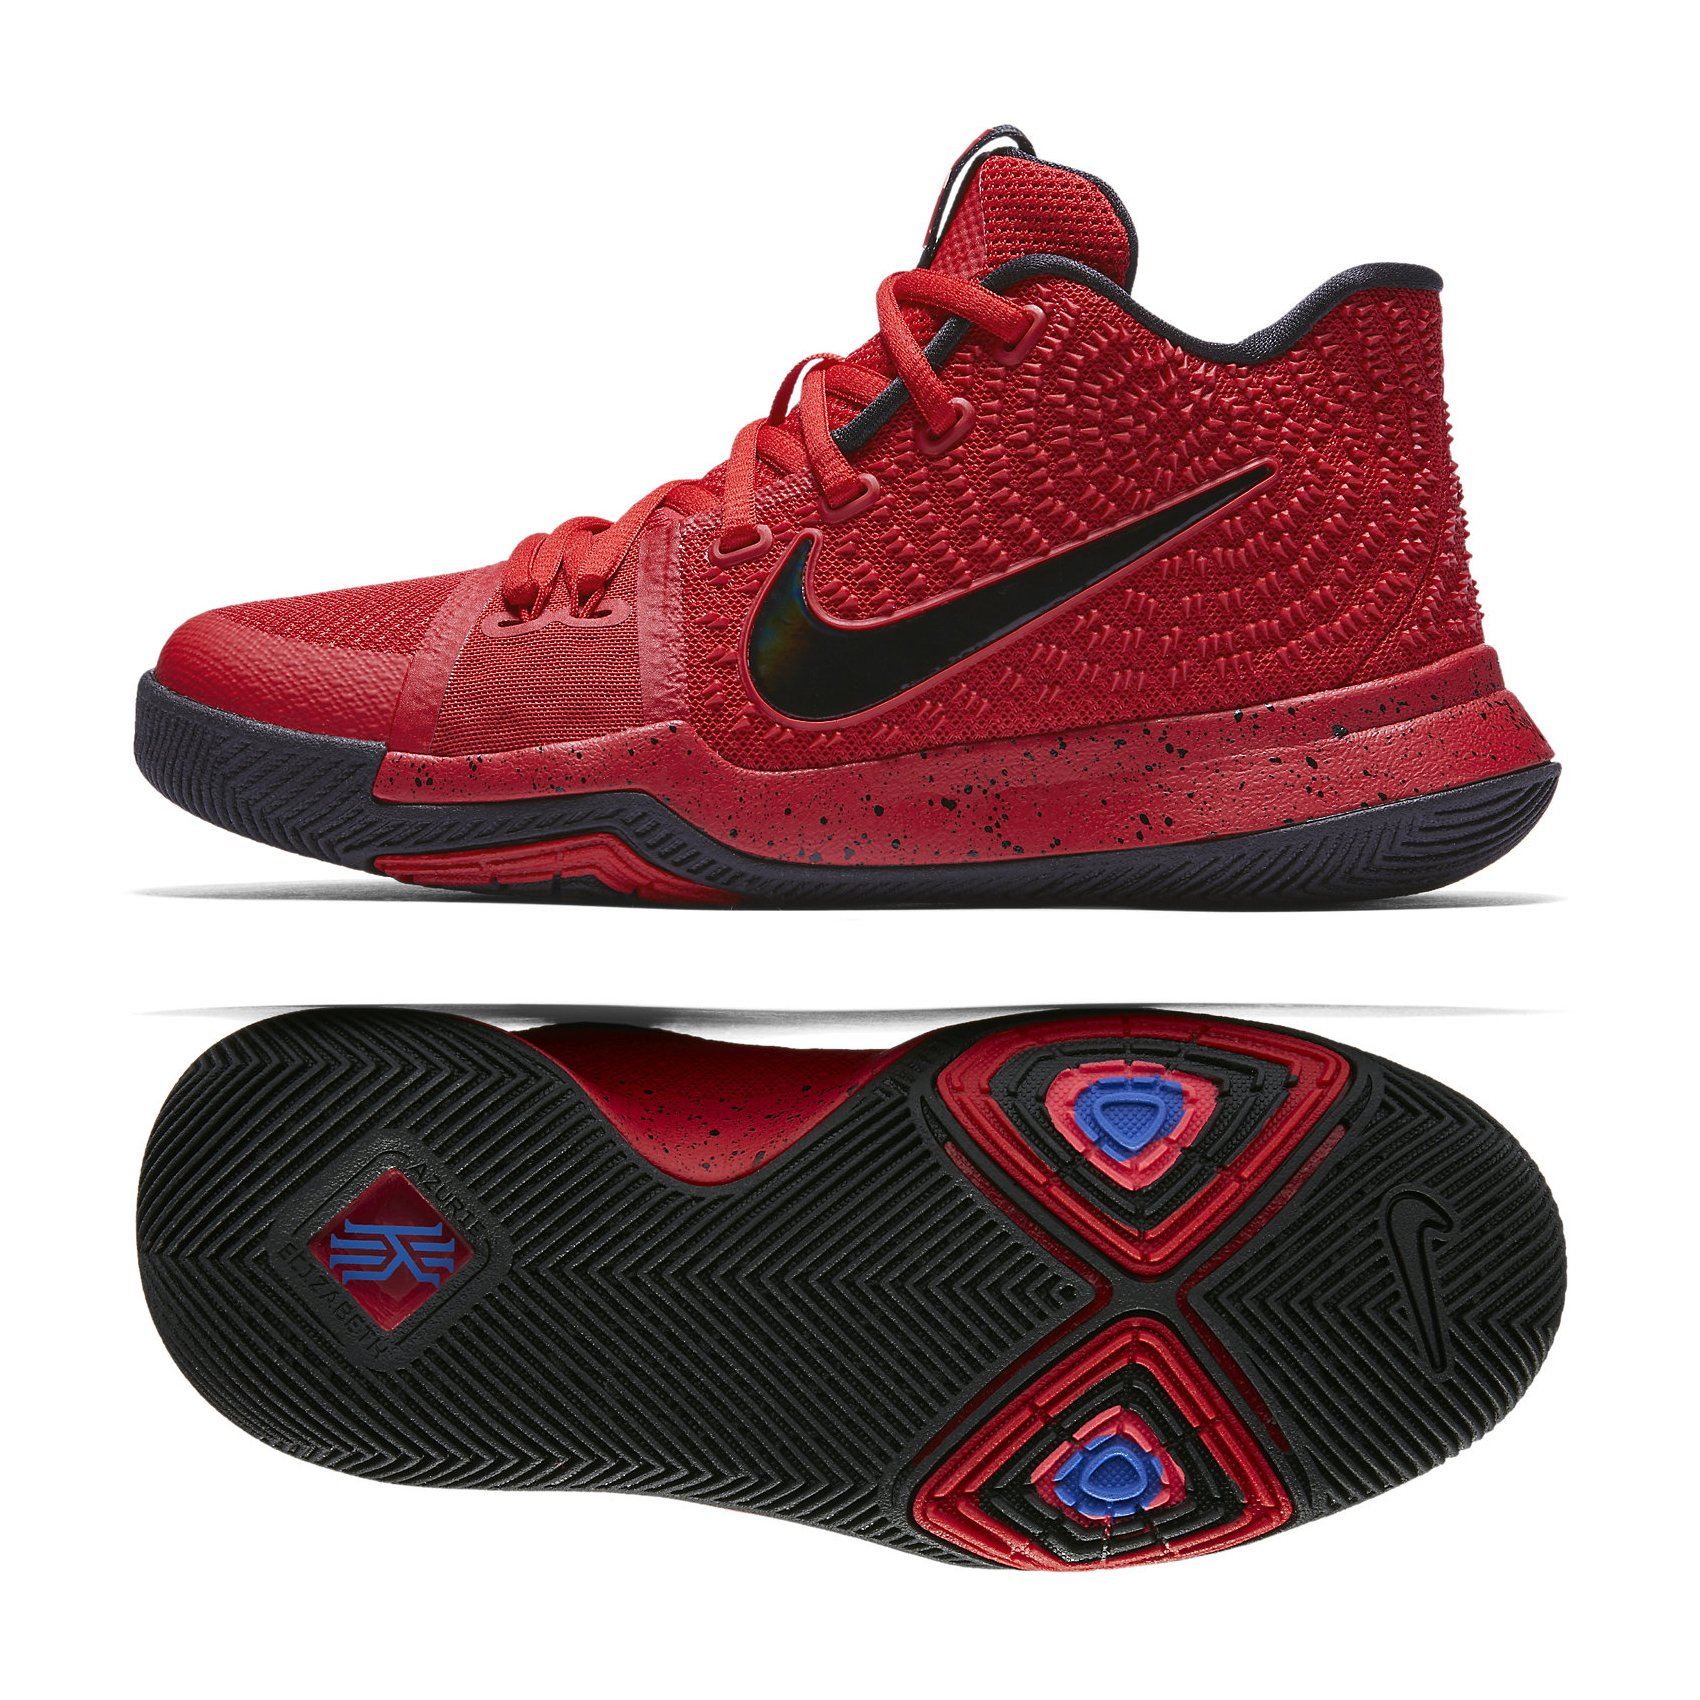 Nike Kyrie 3 (GS) 859466 600 University Red/Black/Team Red Kids Basketball Shoes (7Y)